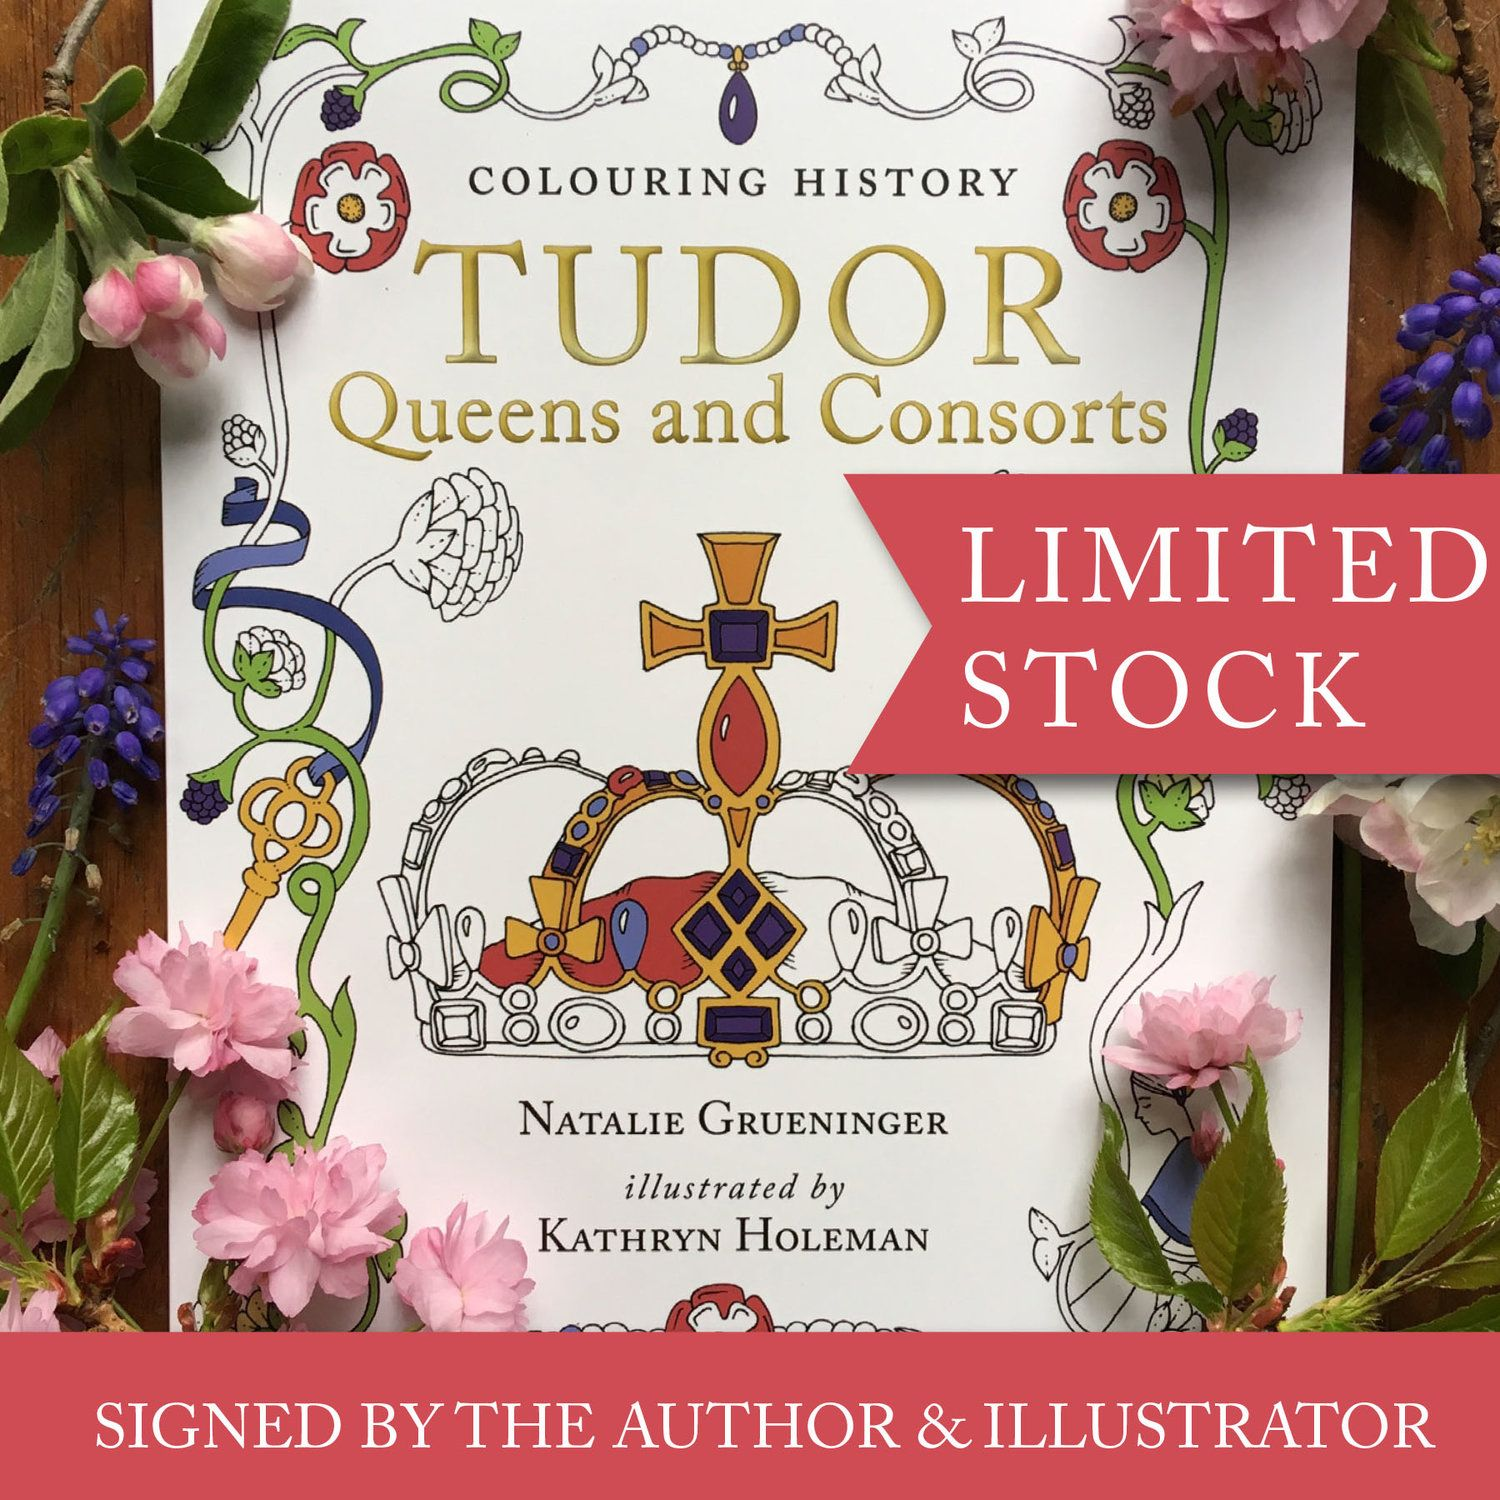 Photo of Tudor Queens and Consorts signed copy — Colouring Tudor History